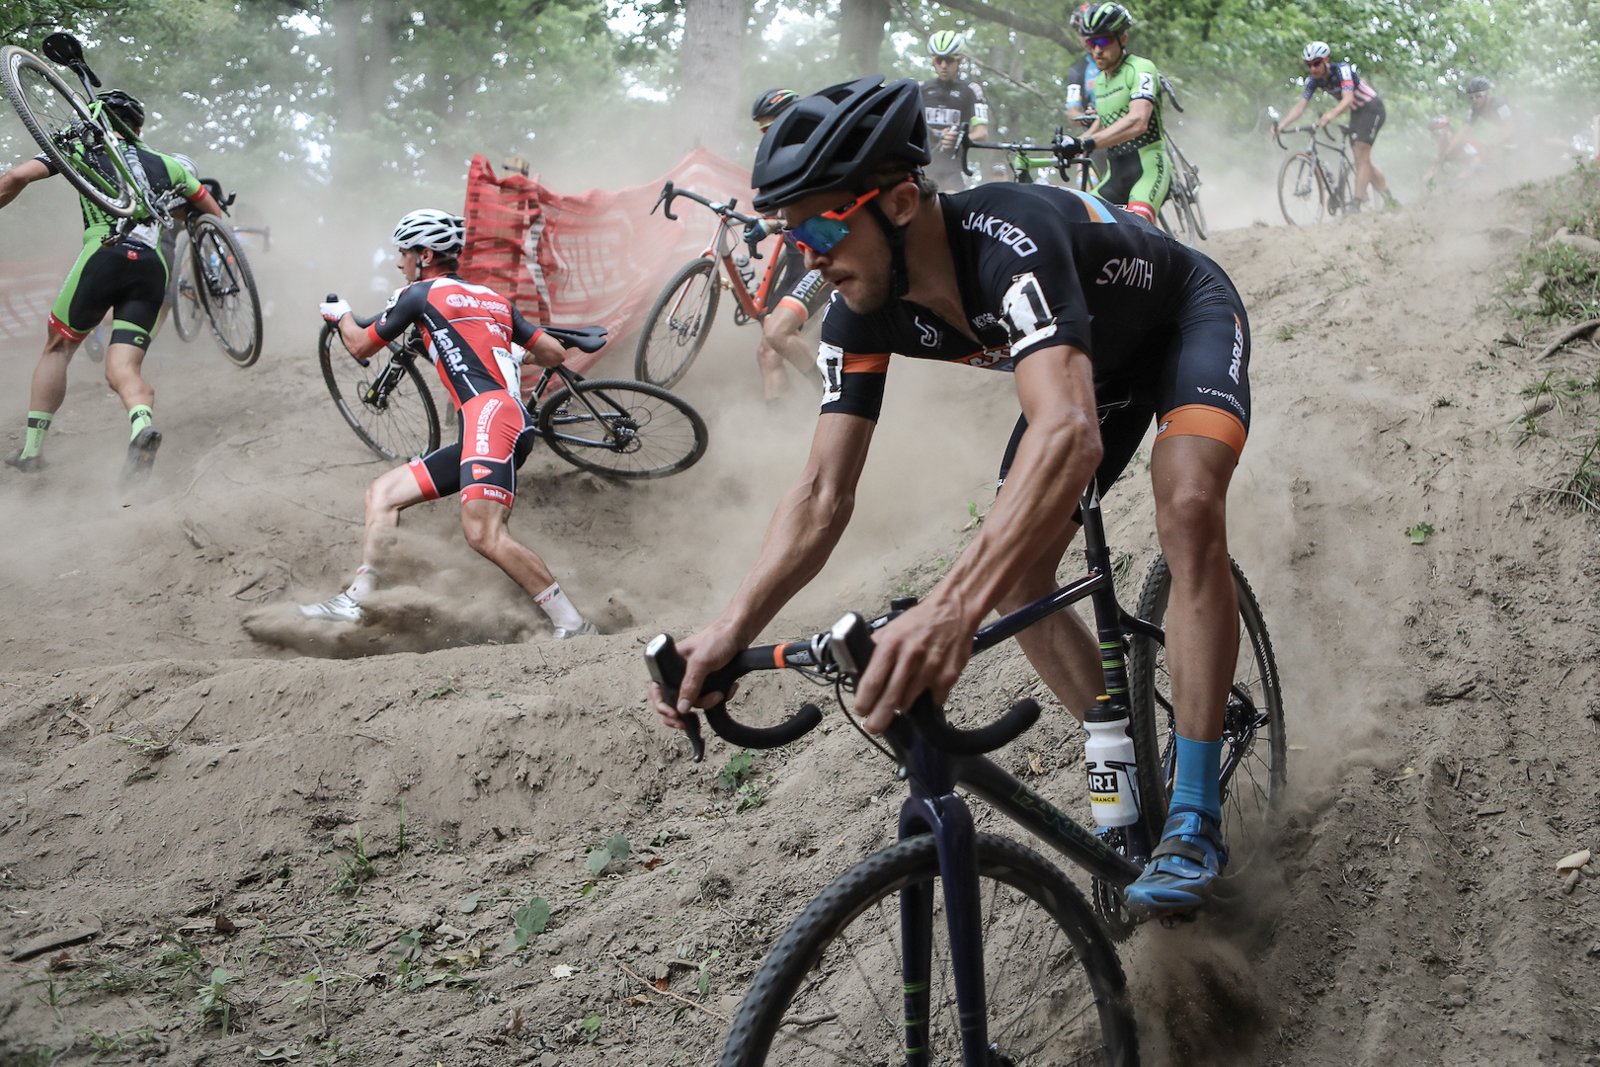 """Meg McMahon, United States. """"The first US C1 Cyclocross race of the season in Rochester NY. It was an extremely hot and therefore a dusty dry course. Danny Summerhill decided to ride a different line. As a sports photographer you prepare and as I watched the pre ride there were several riders exploring different lines in this technical section. I had a feeling on the first lap some chaos would ensue."""" Professional. @mcmahon_meg"""